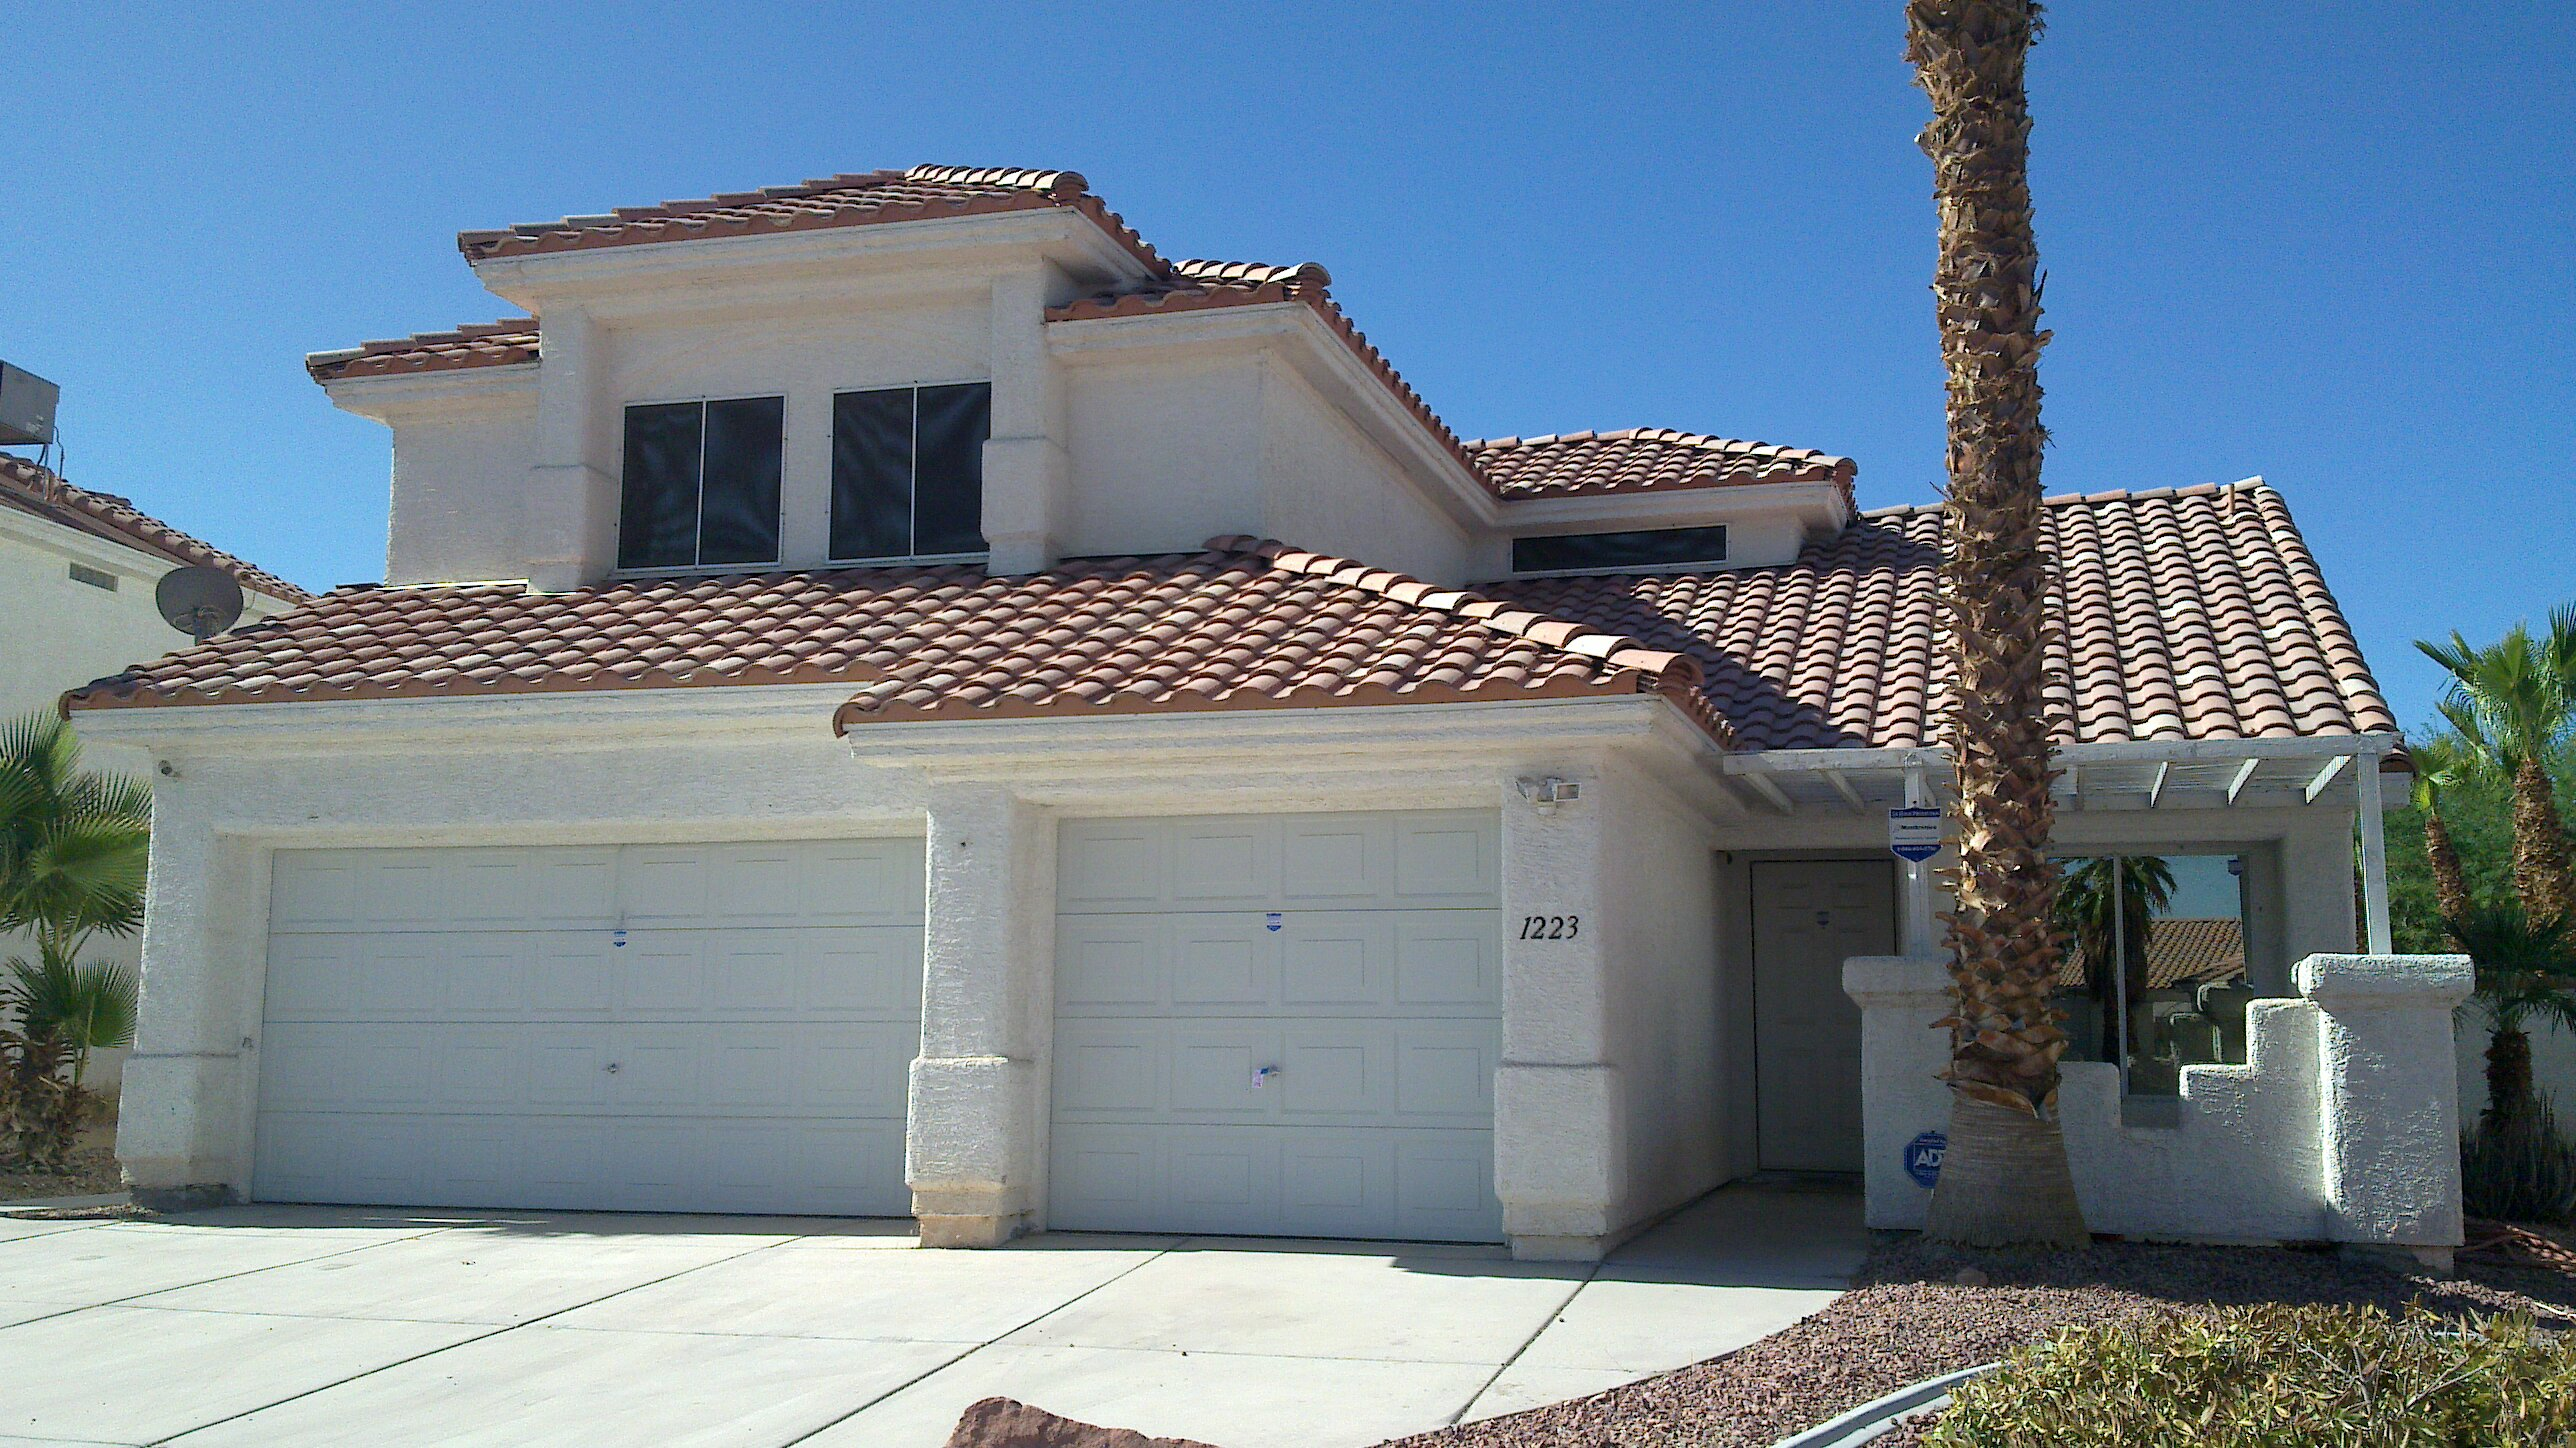 4 bed 2.5 bath home in North Las Vegas for Sale